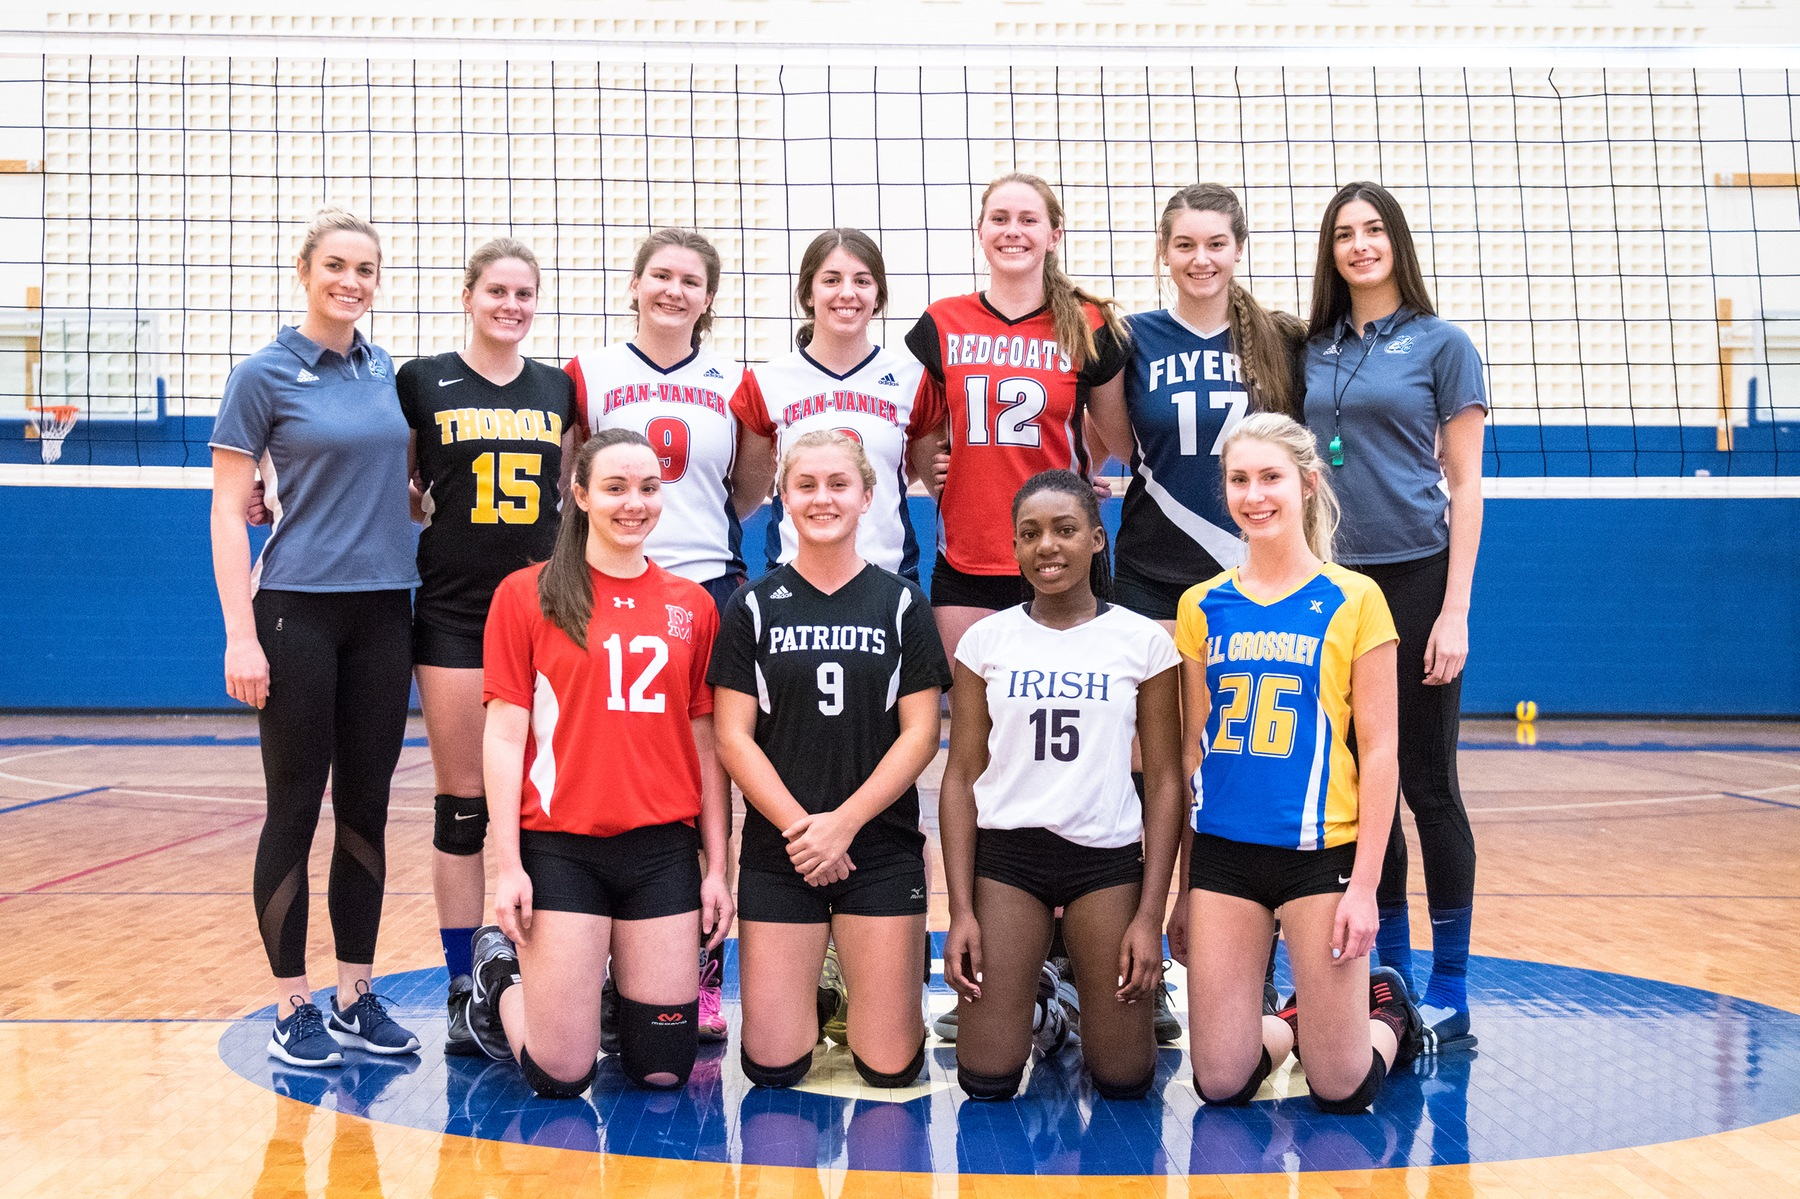 PHOTOS: 2017 Niagara Region Girls' Volleyball Showcase